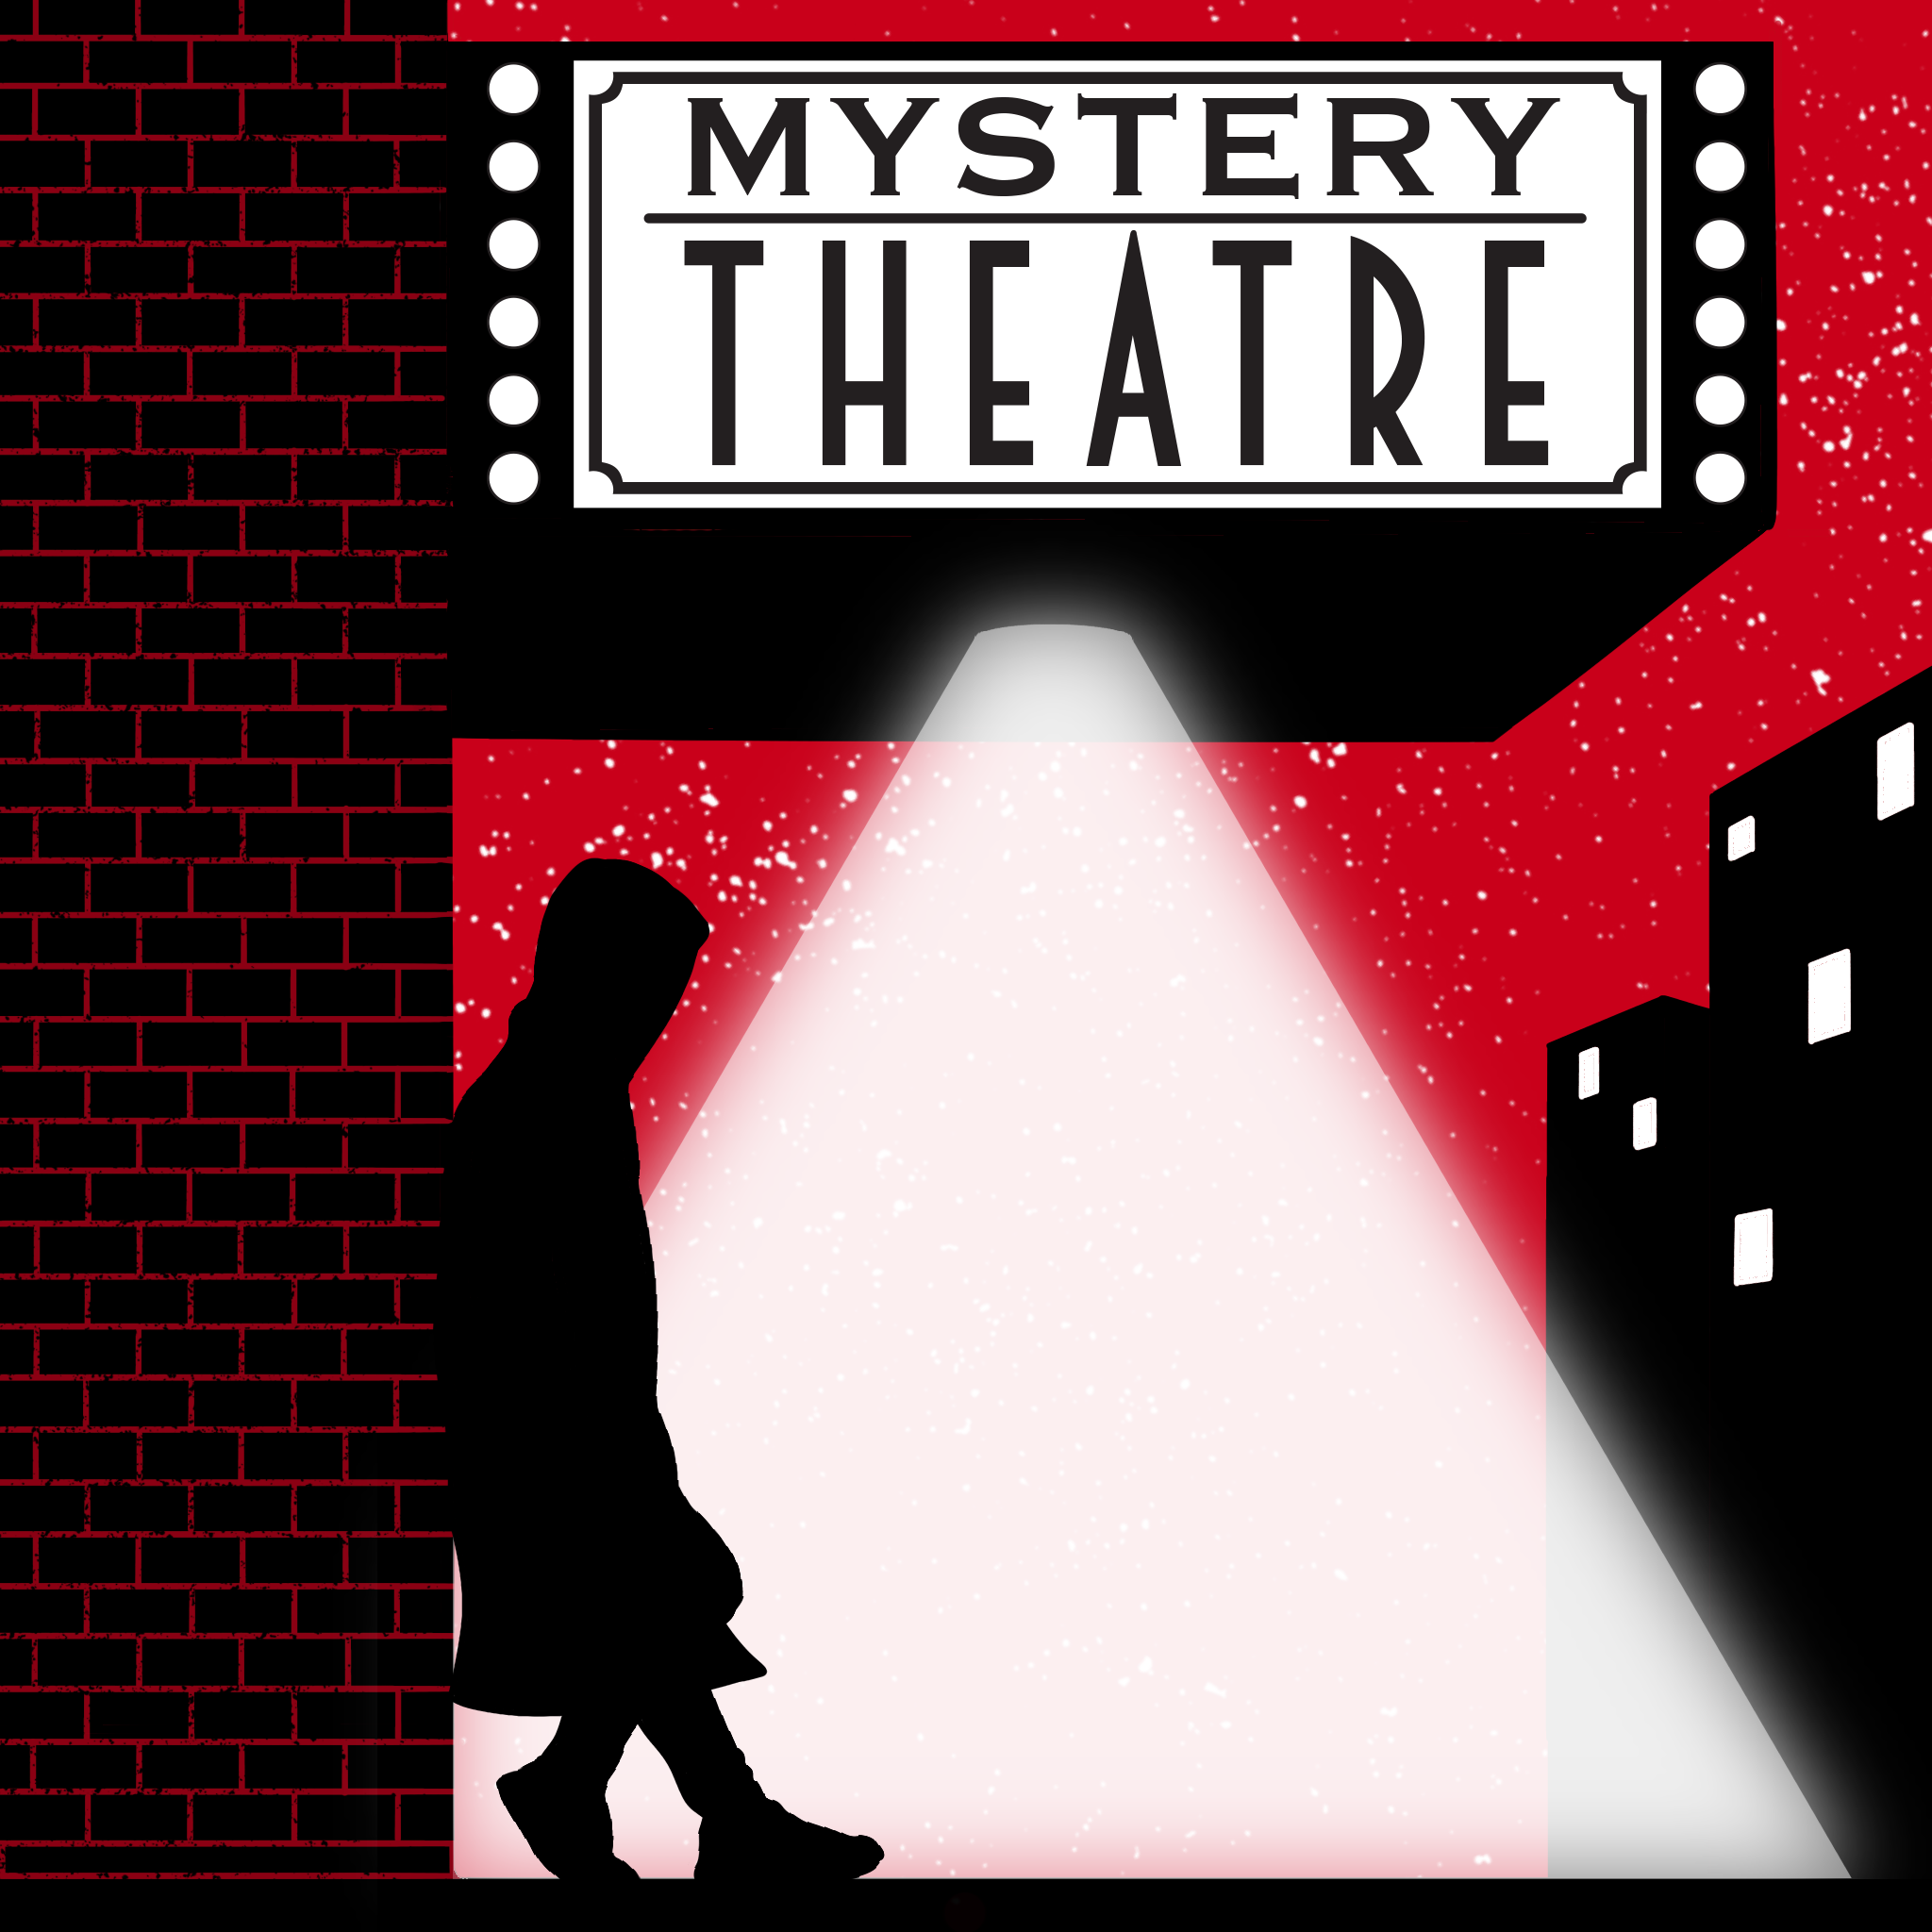 Artwork for Prime Stage Theatre's A Knavish Piece of Mystery Act IV